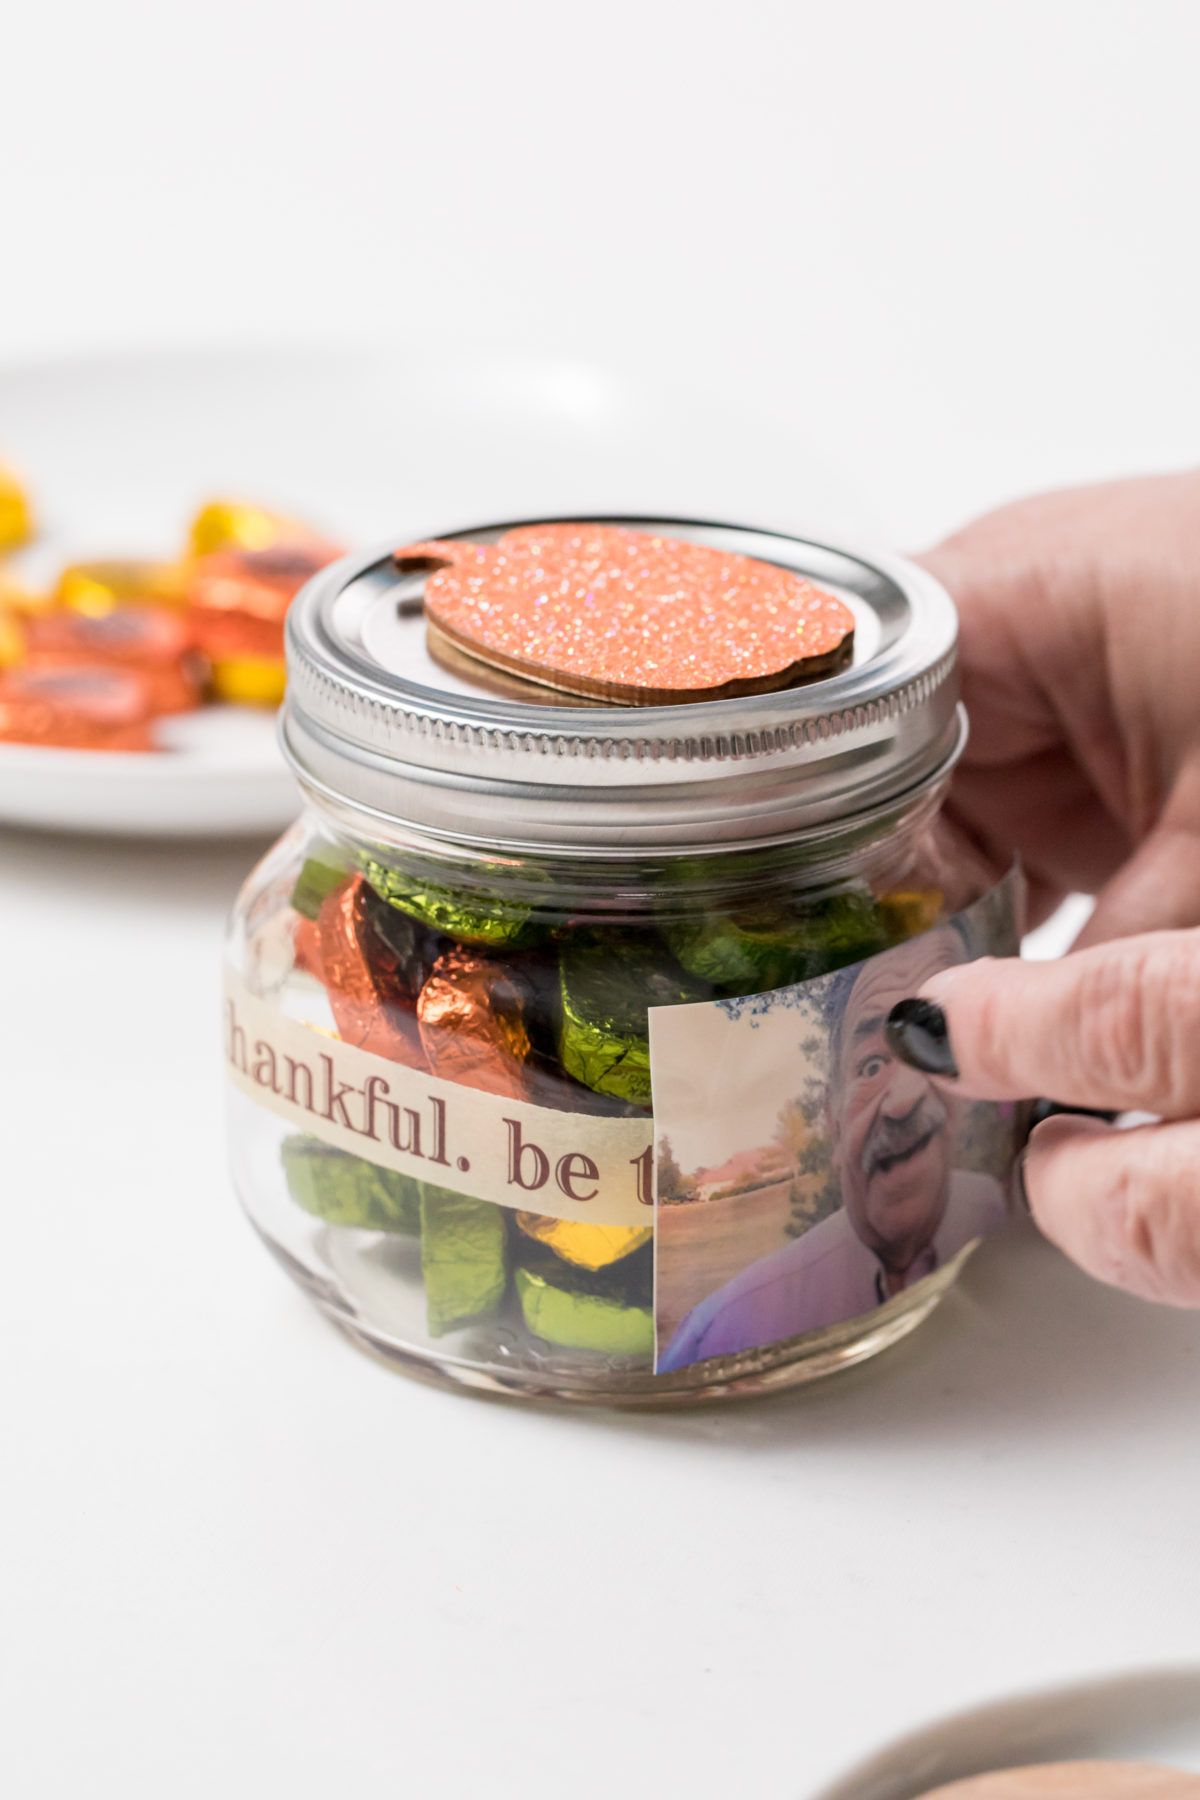 5D4B4675 - Thanksgiving Candy Jars - Decorate the jar